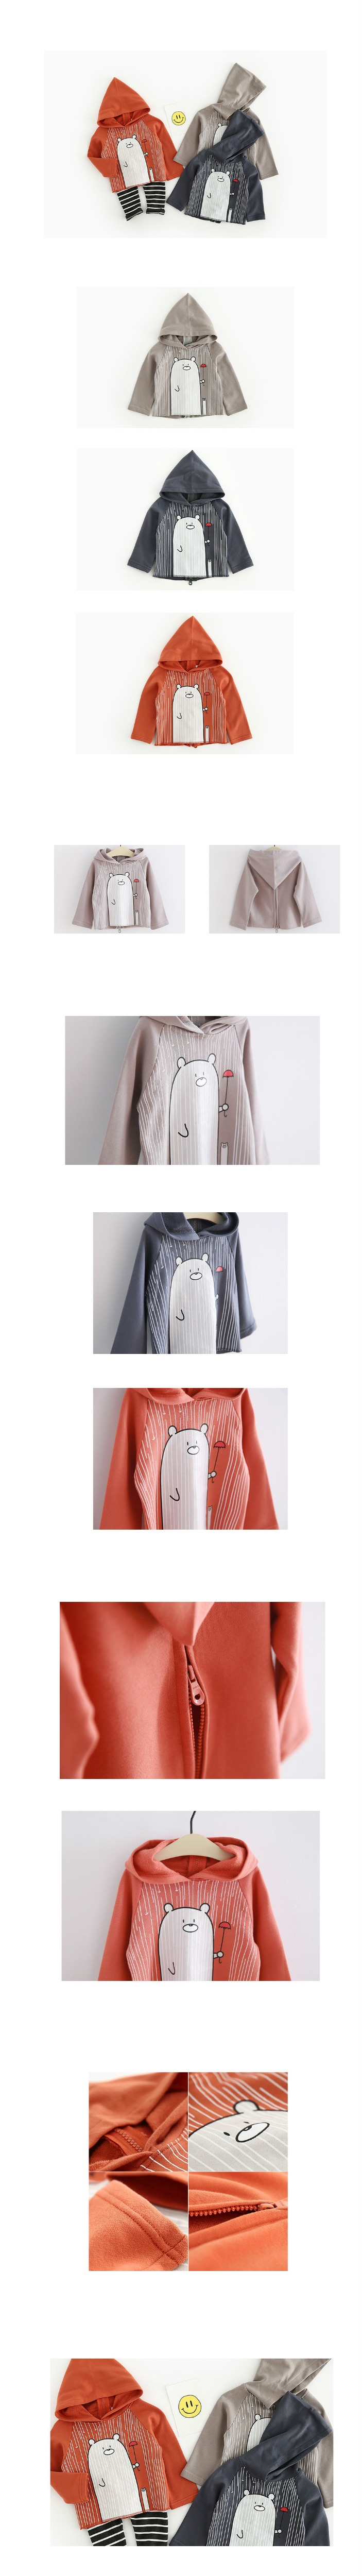 Newborn Baby Kids Boy Bear Hooded sweatshirt Infant Babies Cute Cartoon rain Hoodies baby t shirt Clothes Outfit drop shipping (4)